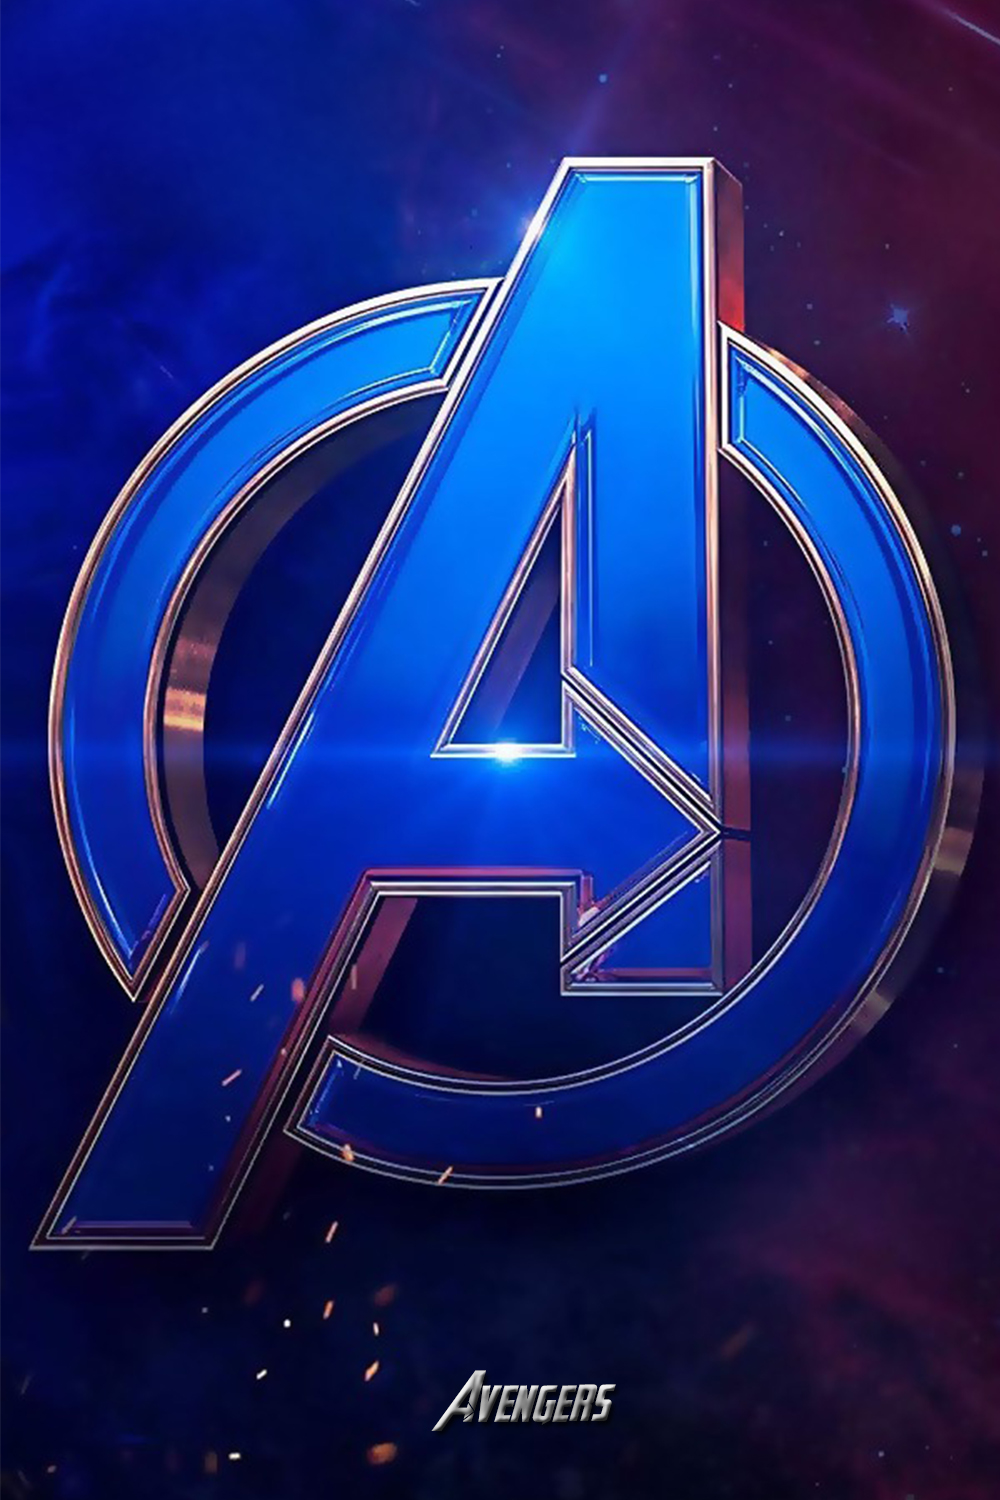 Avengers Wallpaper for Mobile HD Free Download in 2020